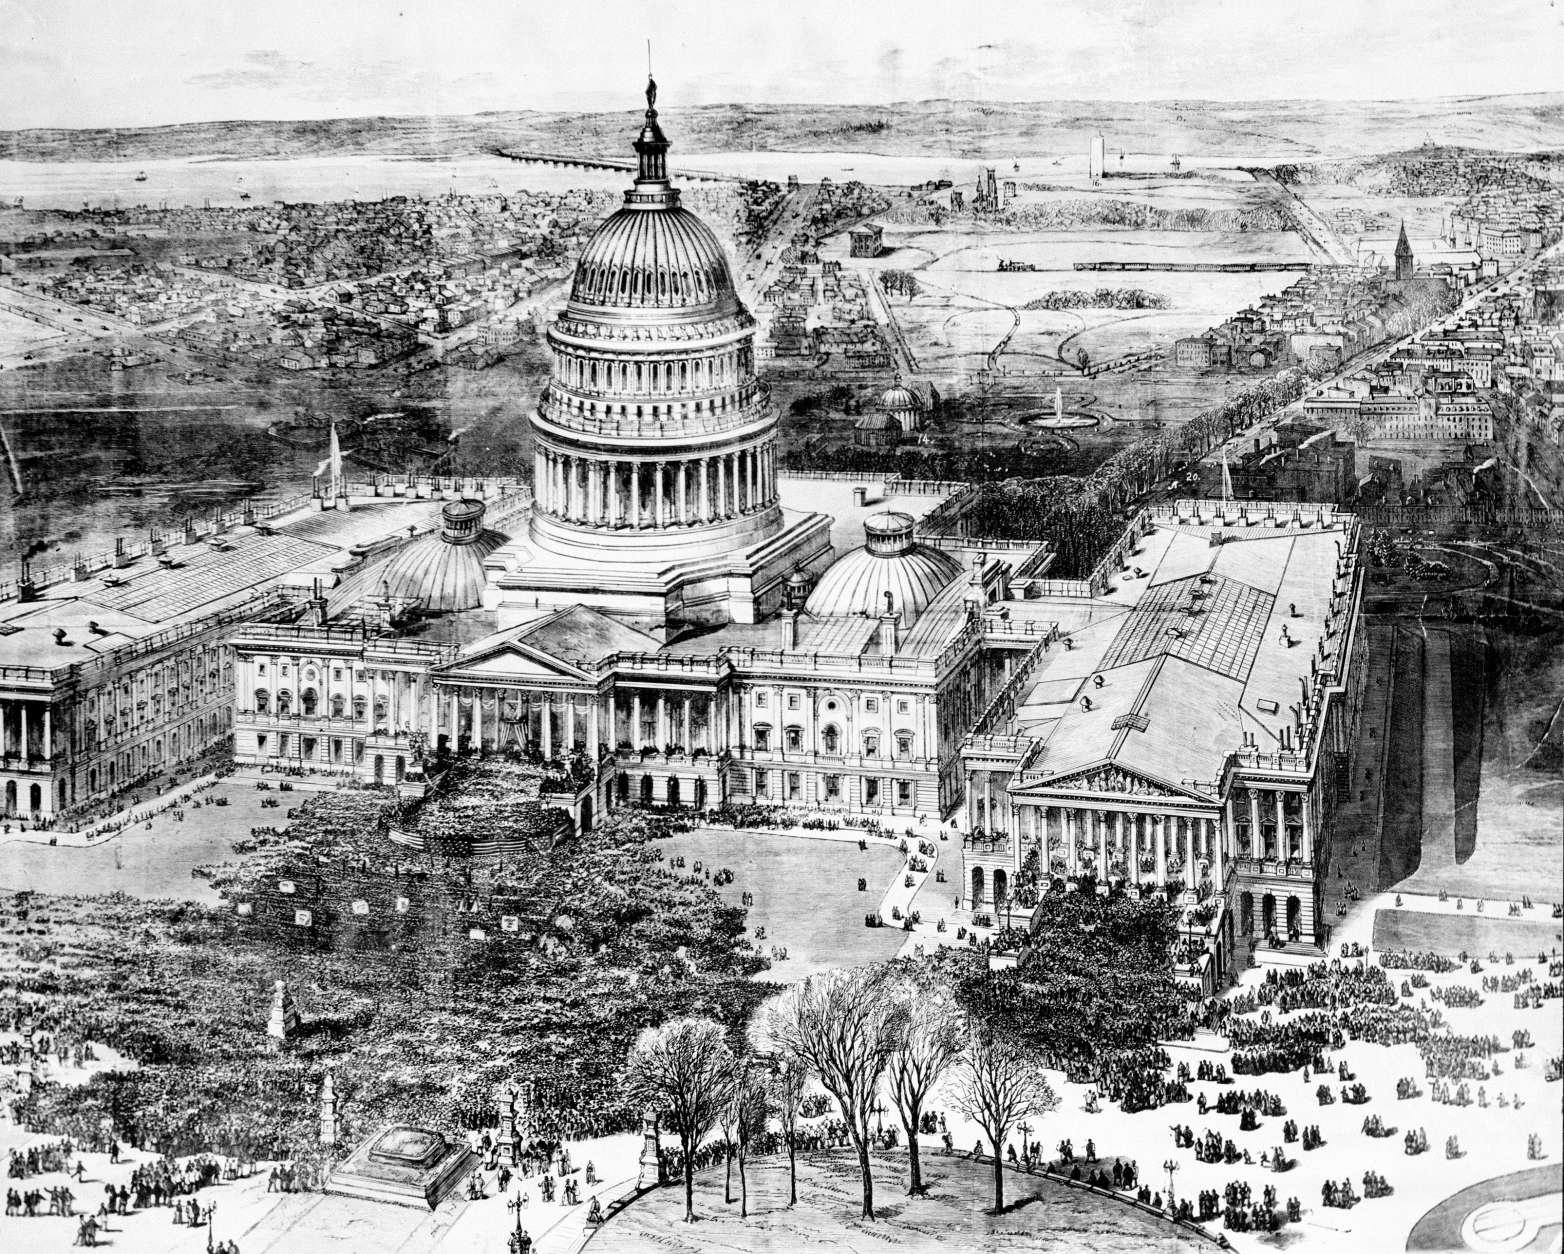 The public inauguration of Rutherford B. Hayes takes place in front of the U.S. Capitol on the East Portico in Washington, D.C., on March 5, 1877.  The unfinished Washington Monument can be seen in far background.  The Smithsonian Mall is on the left and Pennsylvania Avenue runs off to upper right hand corner.  (AP Photo)